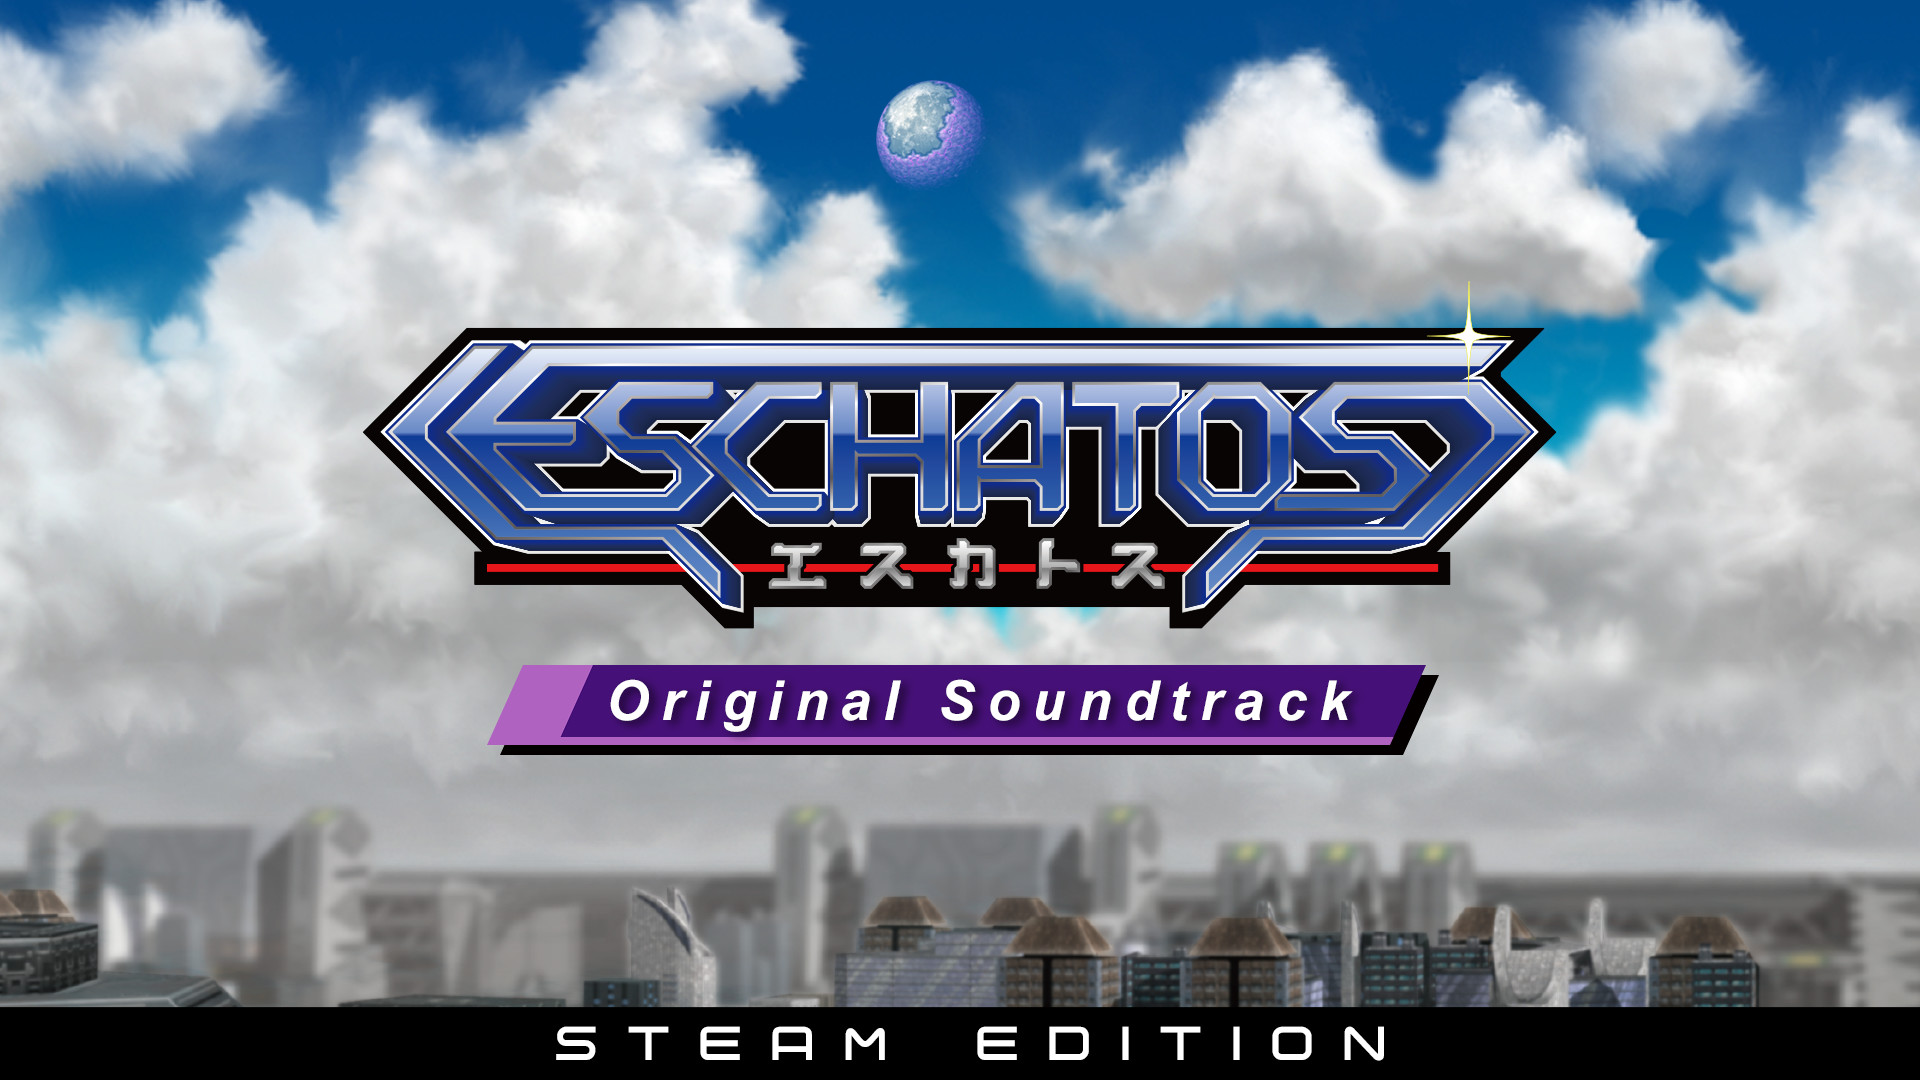 ESCHATOS Original Soundtrack (Steam Edition) screenshot